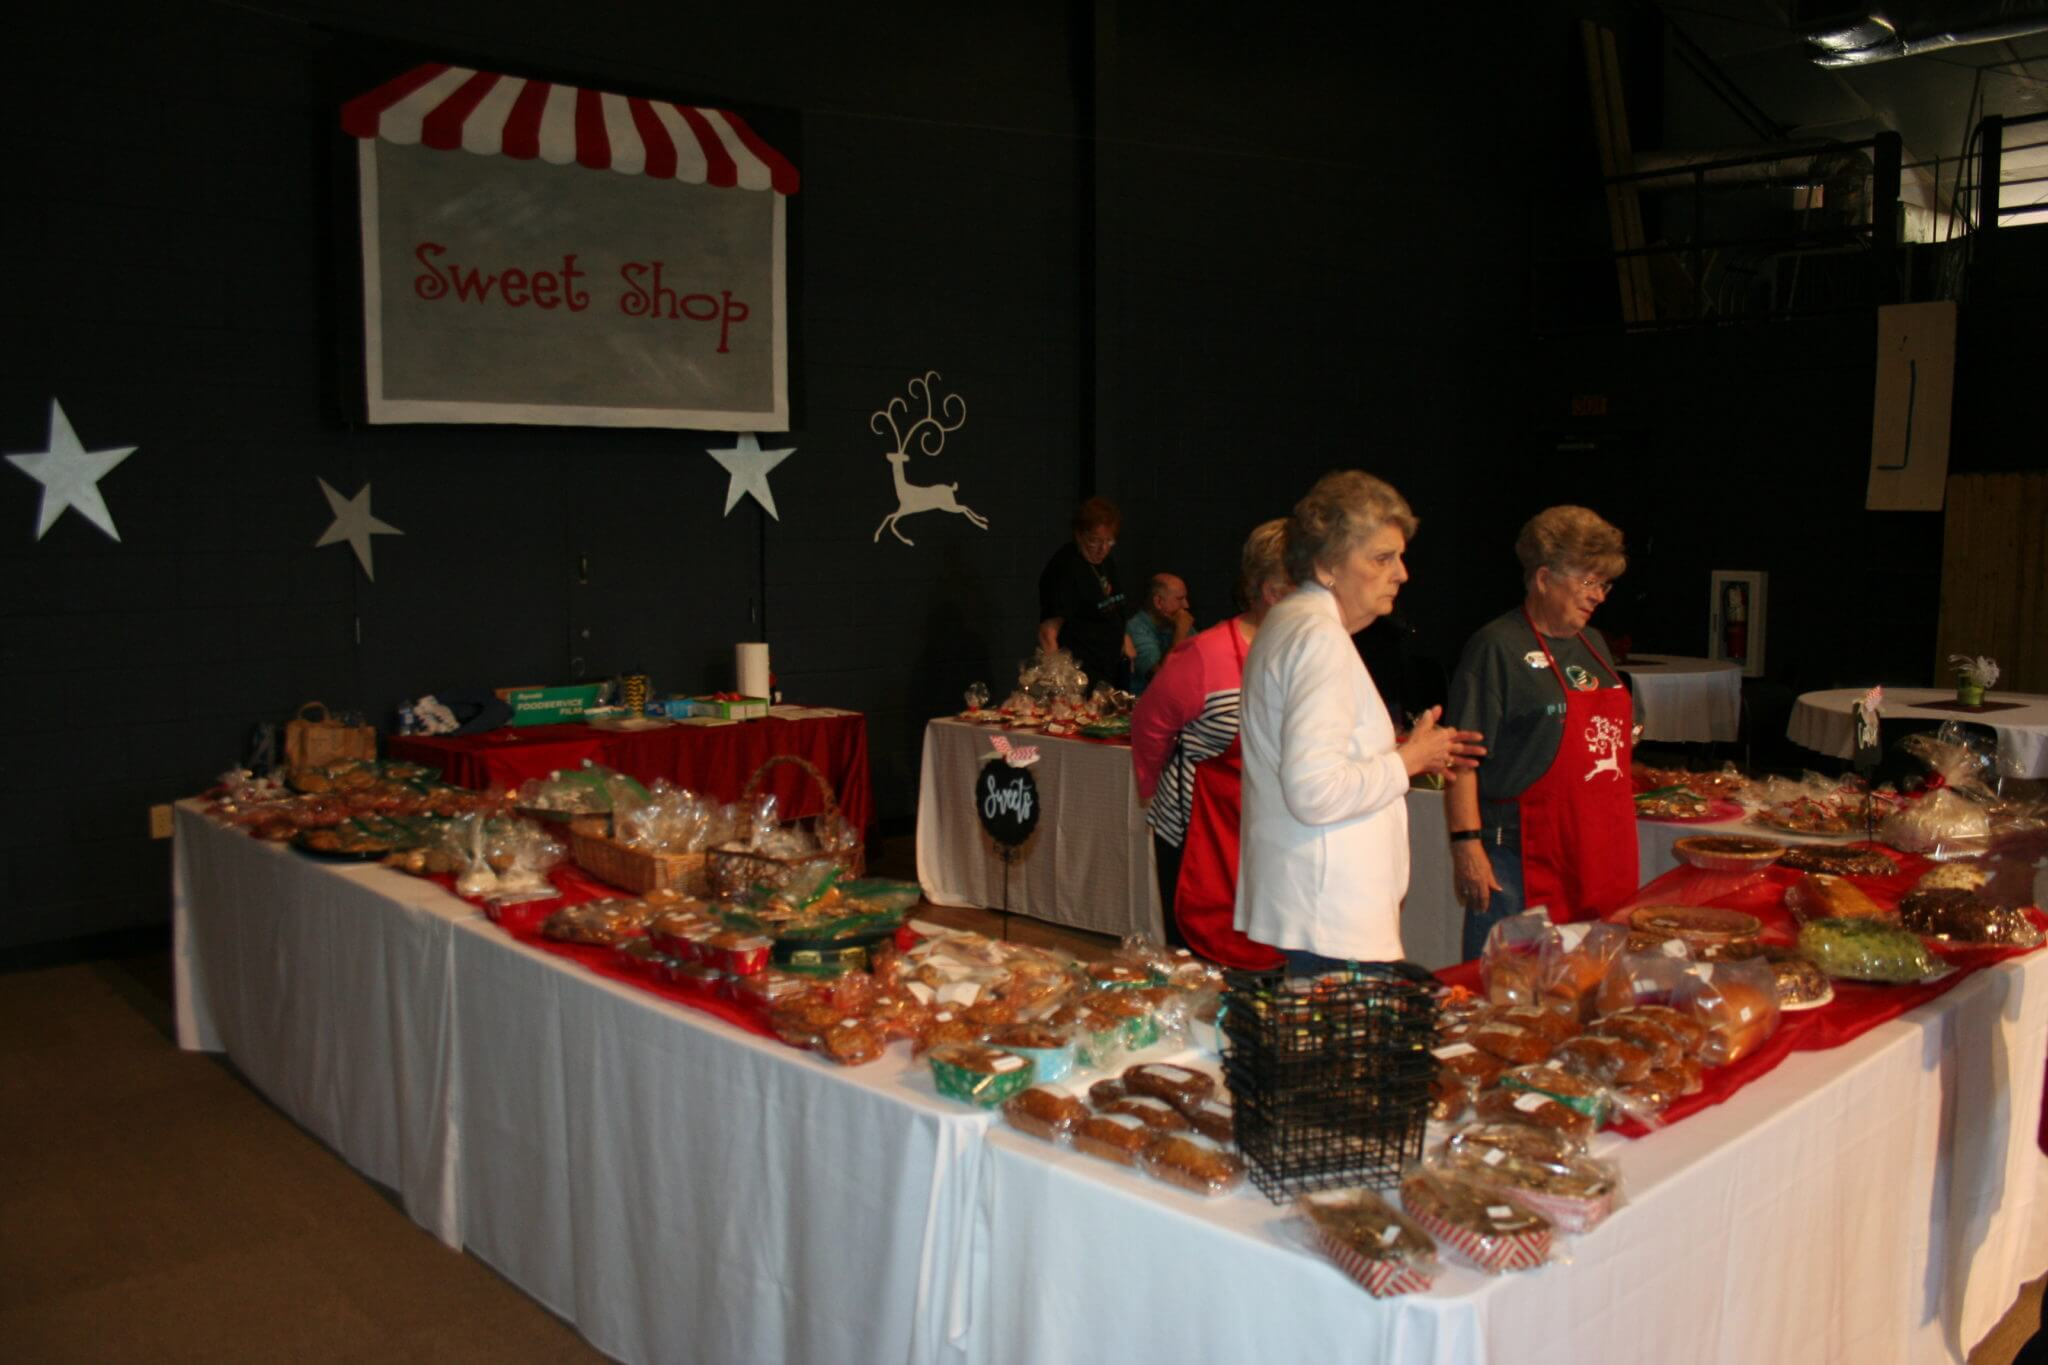 The Sweet Shop at Pine Forest United Methodist Church Arts & Crafts Festival